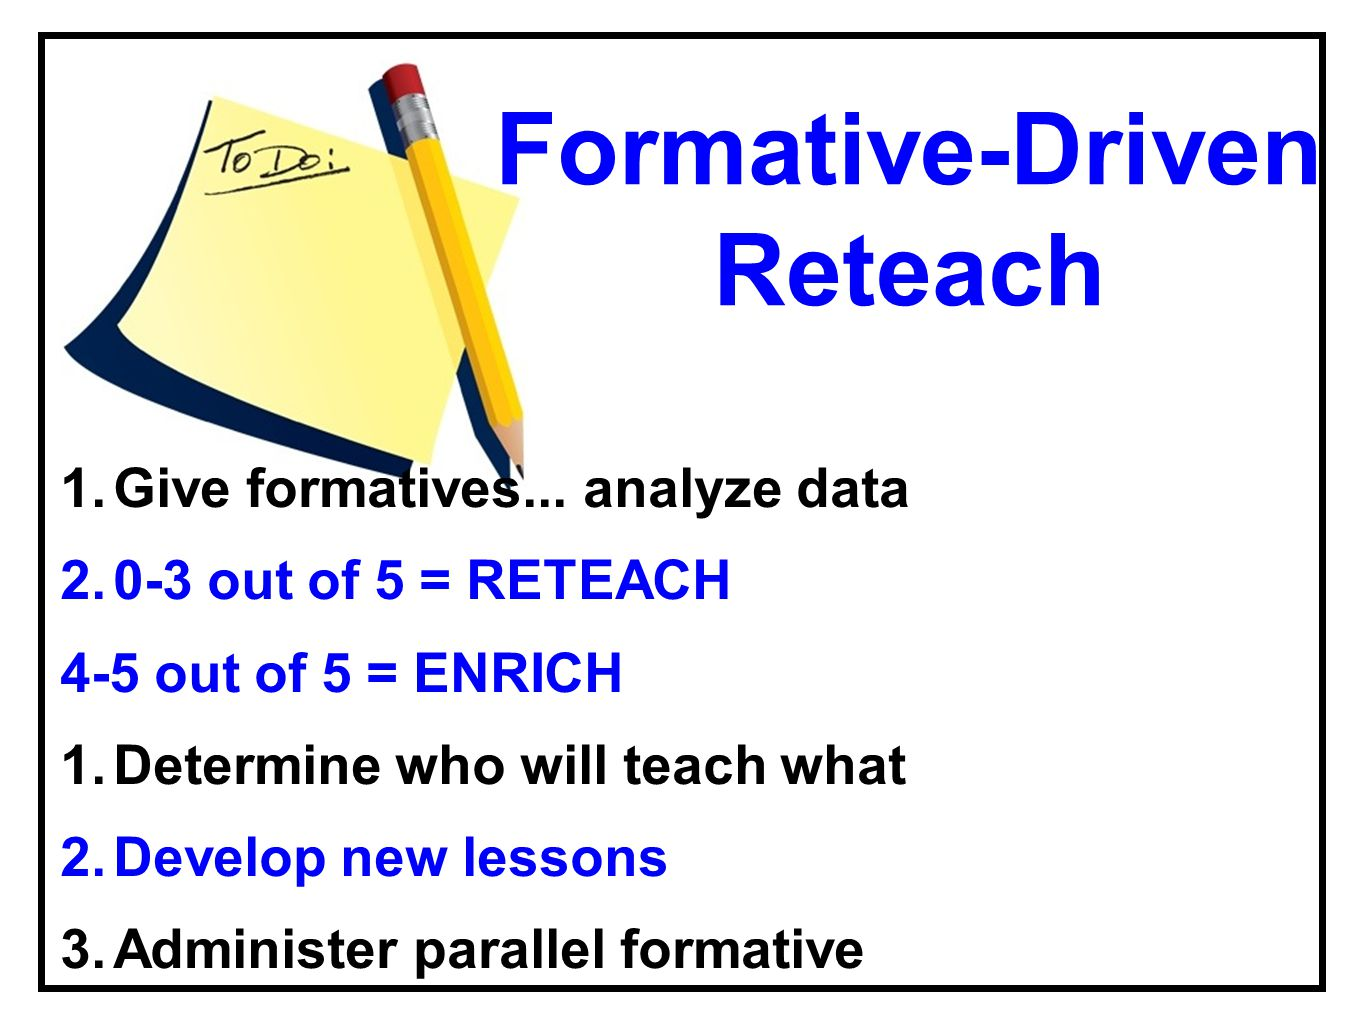 Formative-Driven Reteach 1.Give formatives... analyze data 2.0-3 out of 5 = RETEACH 4-5 out of 5 = ENRICH 1.Determine who will teach what 2.Develop ne